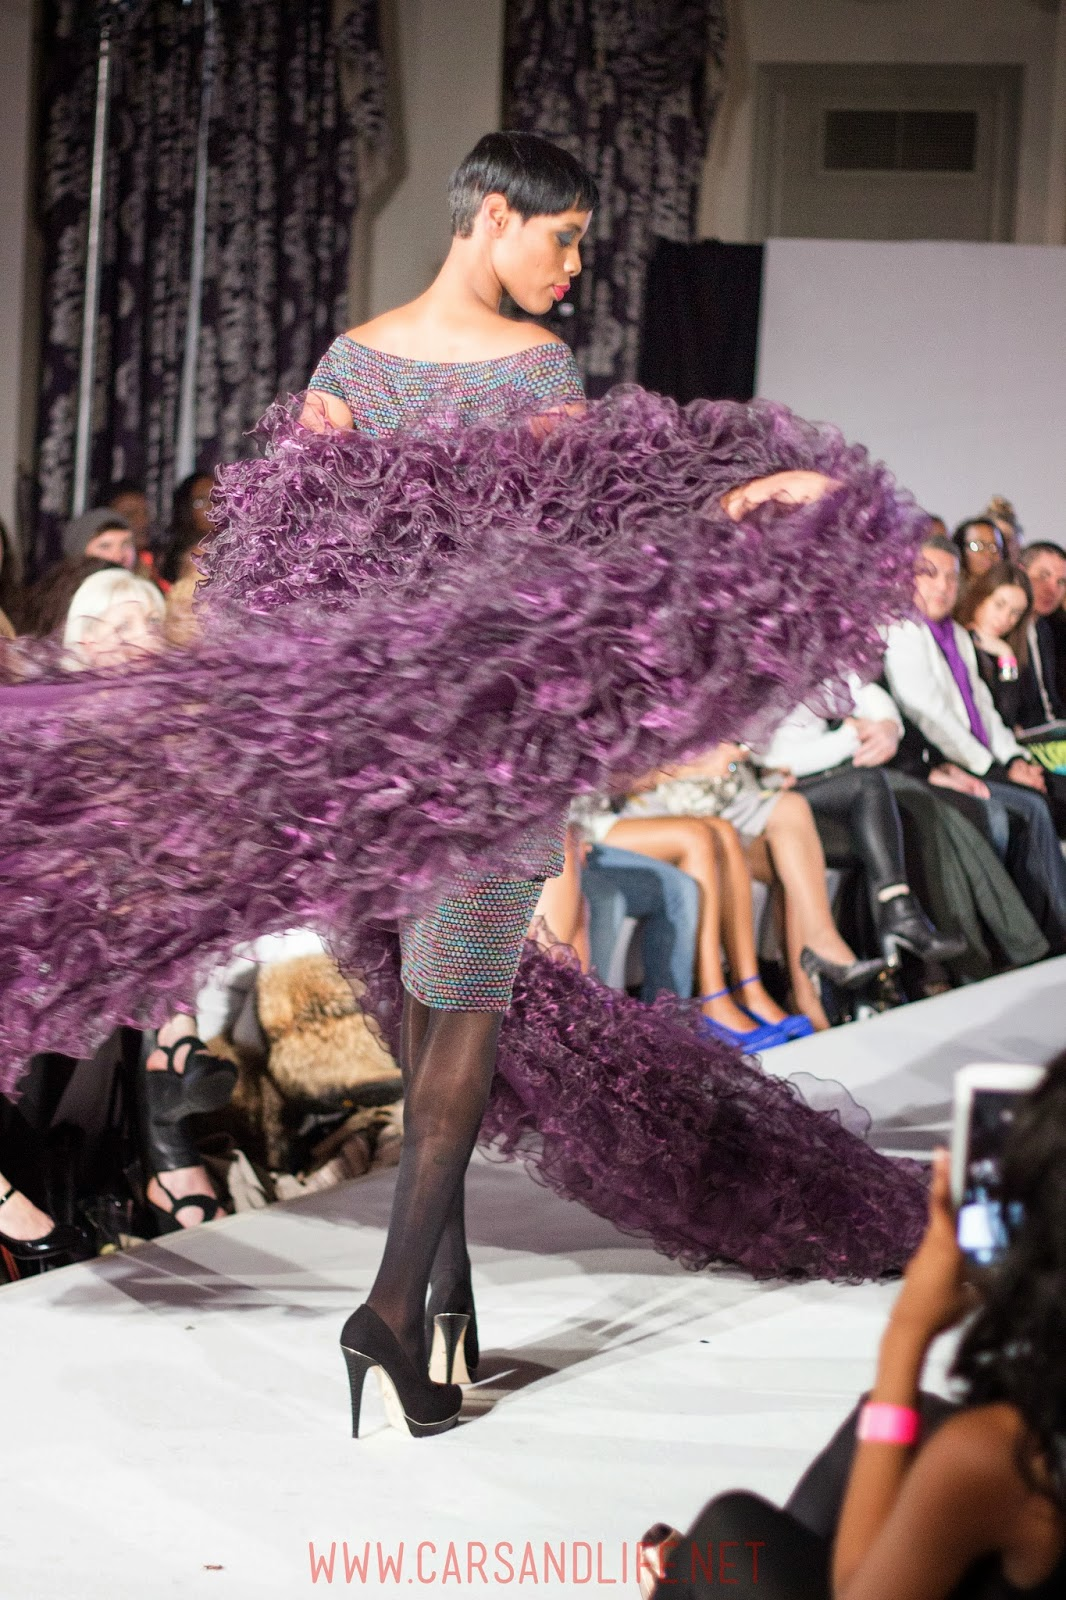 London Fashion Week 2014 | Fashions Finest Show Part II